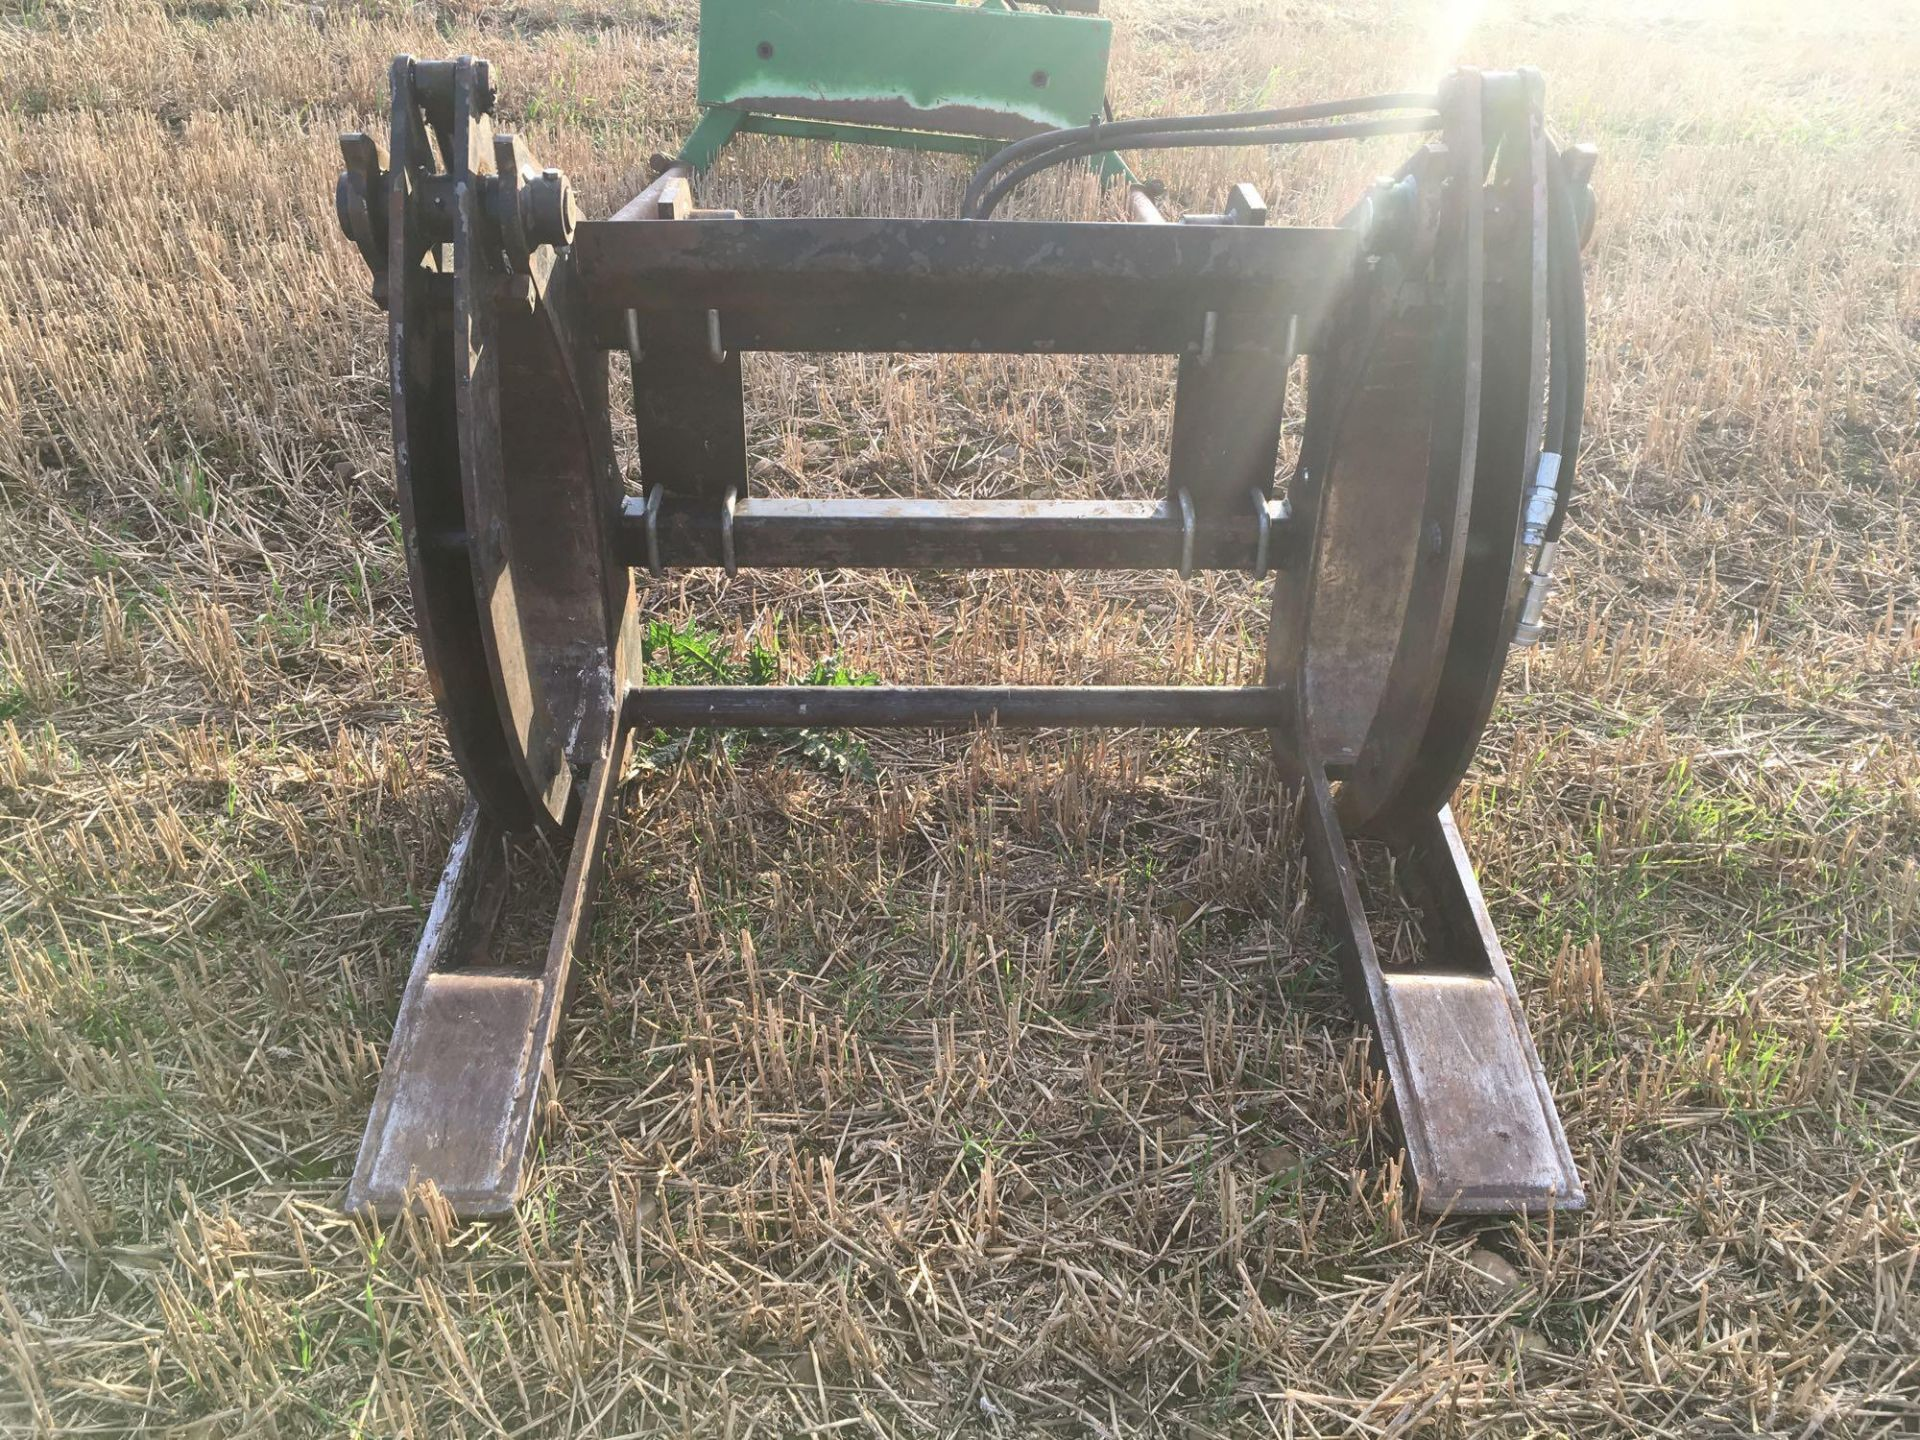 2013 Albutt log grab to fit Manitou. Serial No: 37282. - Image 2 of 2